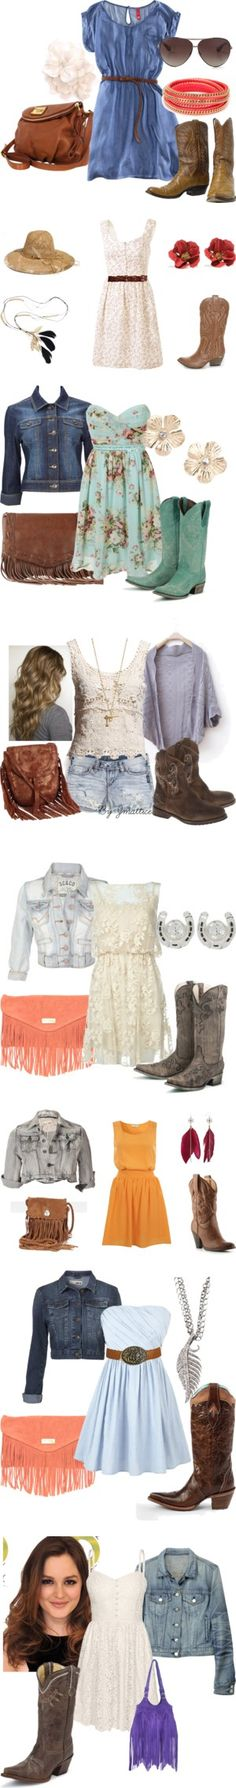 southern outfits- they are all belted and fitted that's key to making these looks work without looking pregnant. Country Style Outfits, Country Dresses, Country Girl Style, Southern Outfits, Country Fashion, Country Western Outfits, Country Wear, Rock Chic, Style Rock